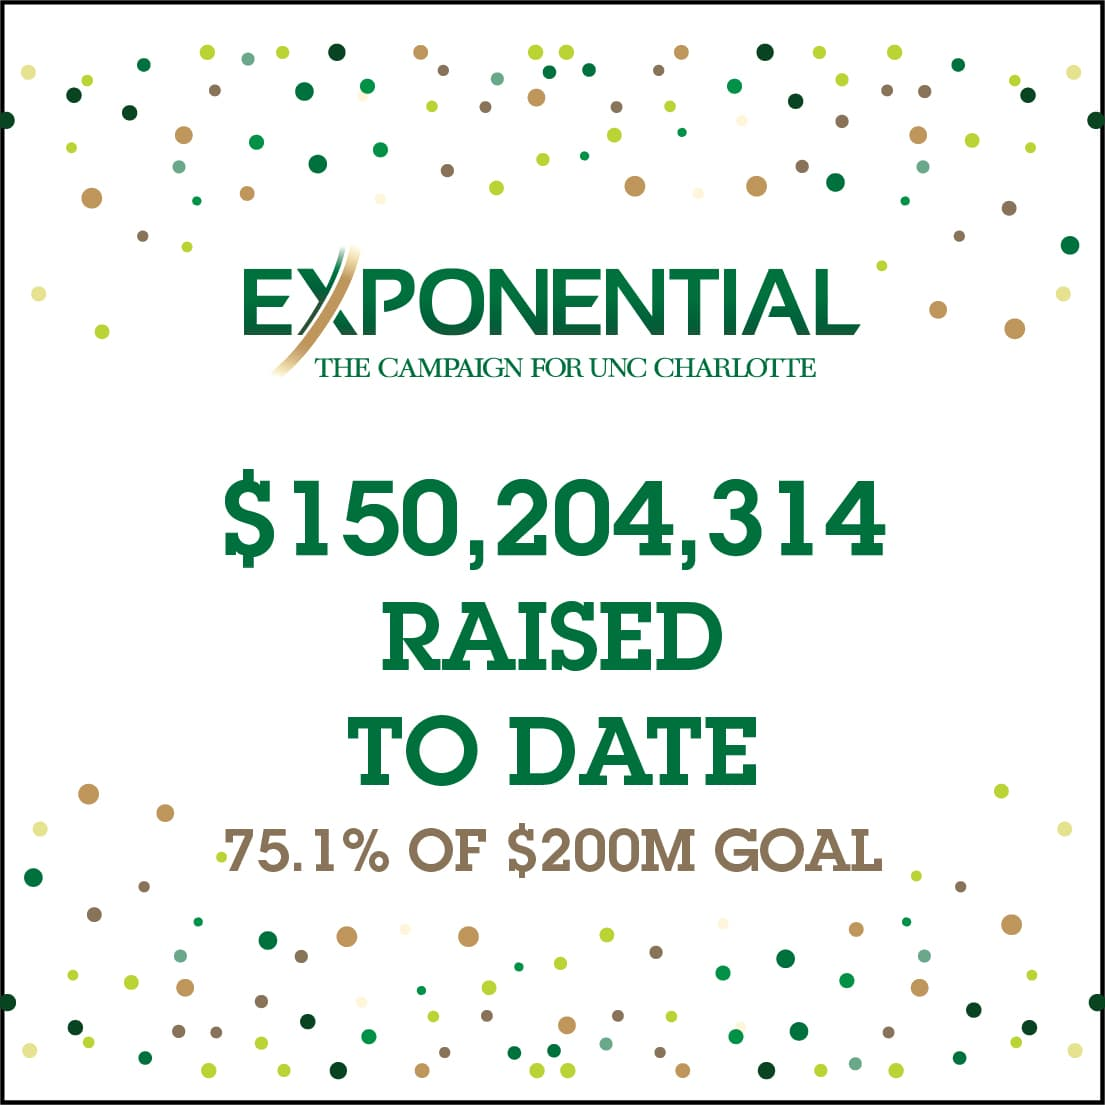 Exponential: $150,204,314 raised to date